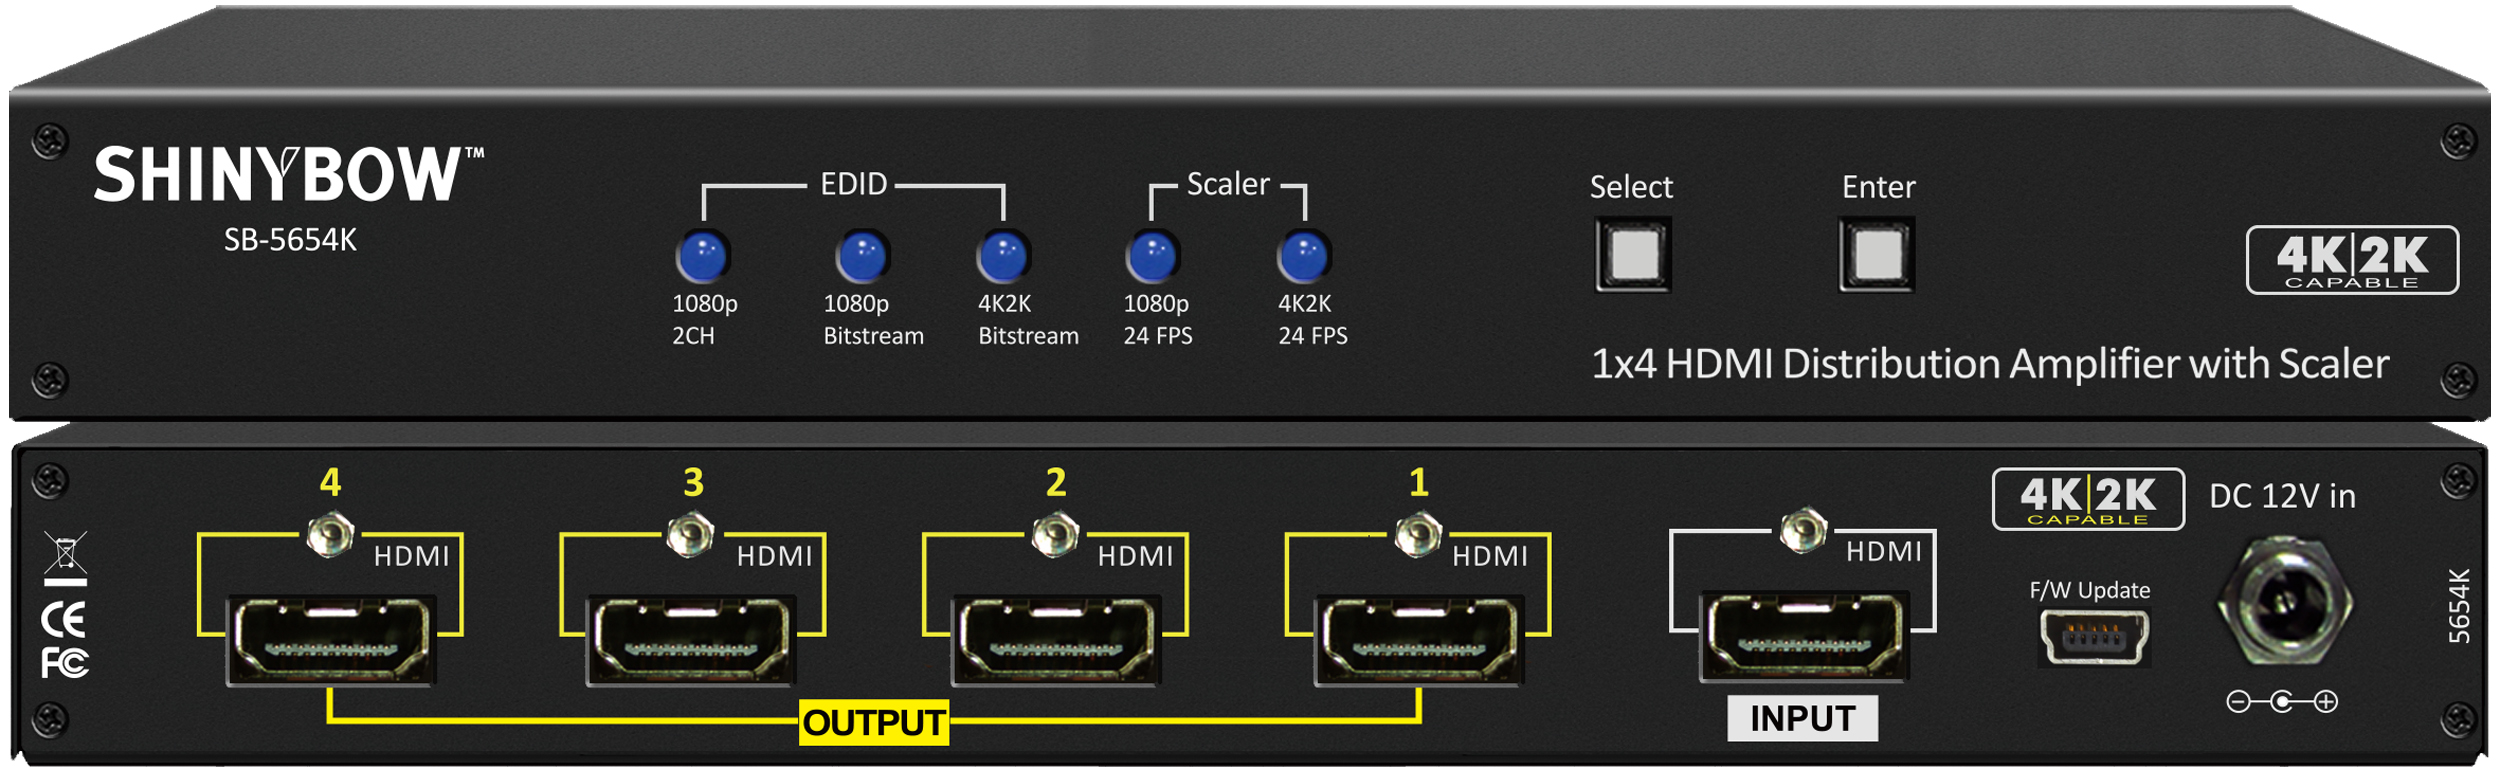 HDMI Distribution Amplifiers